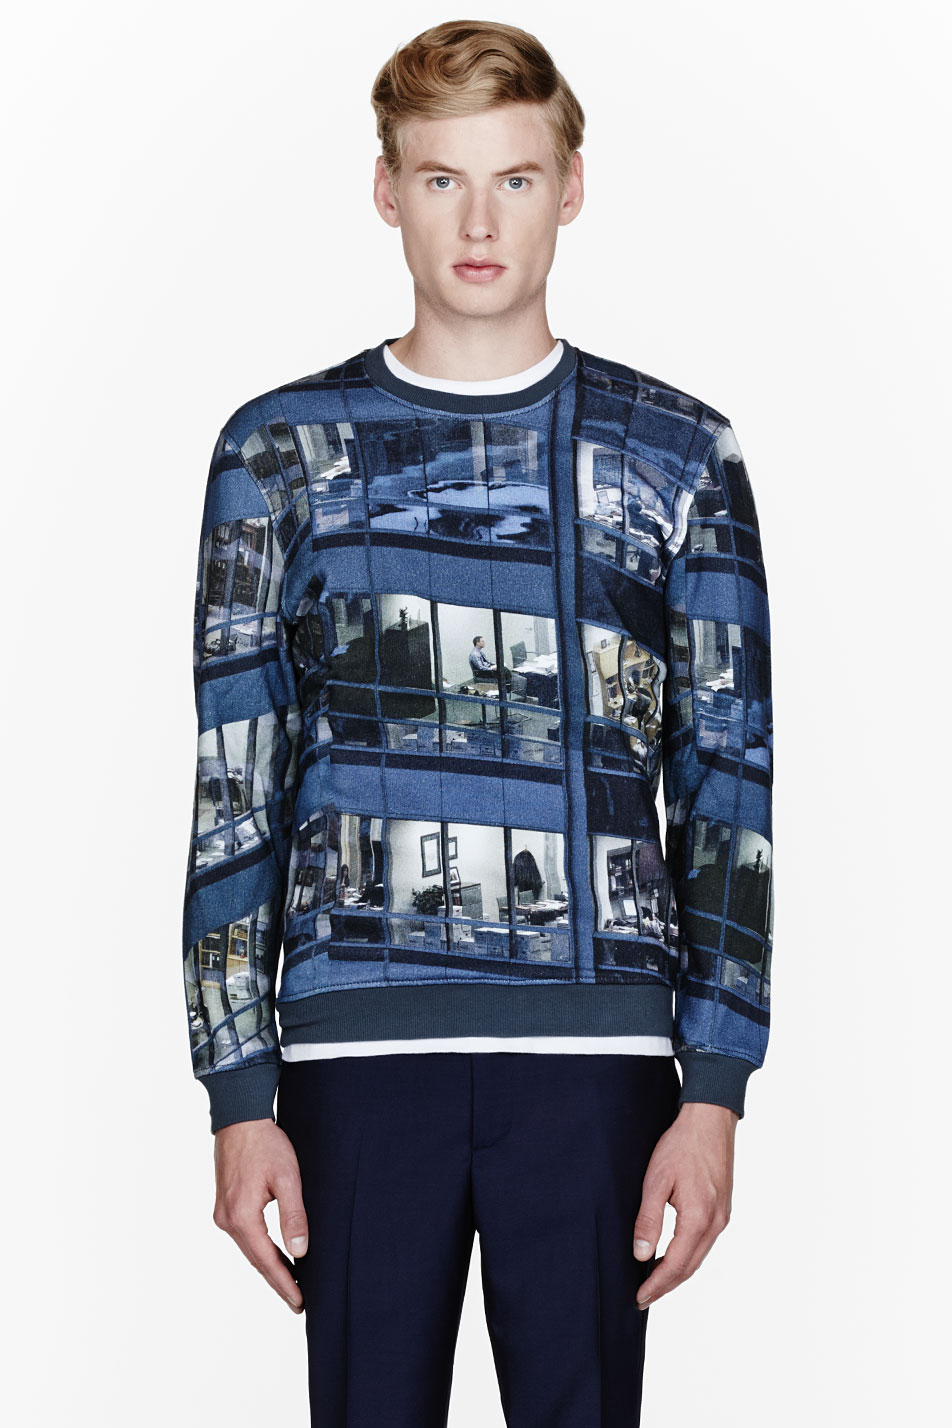 Office Building Sweatshirt Carven